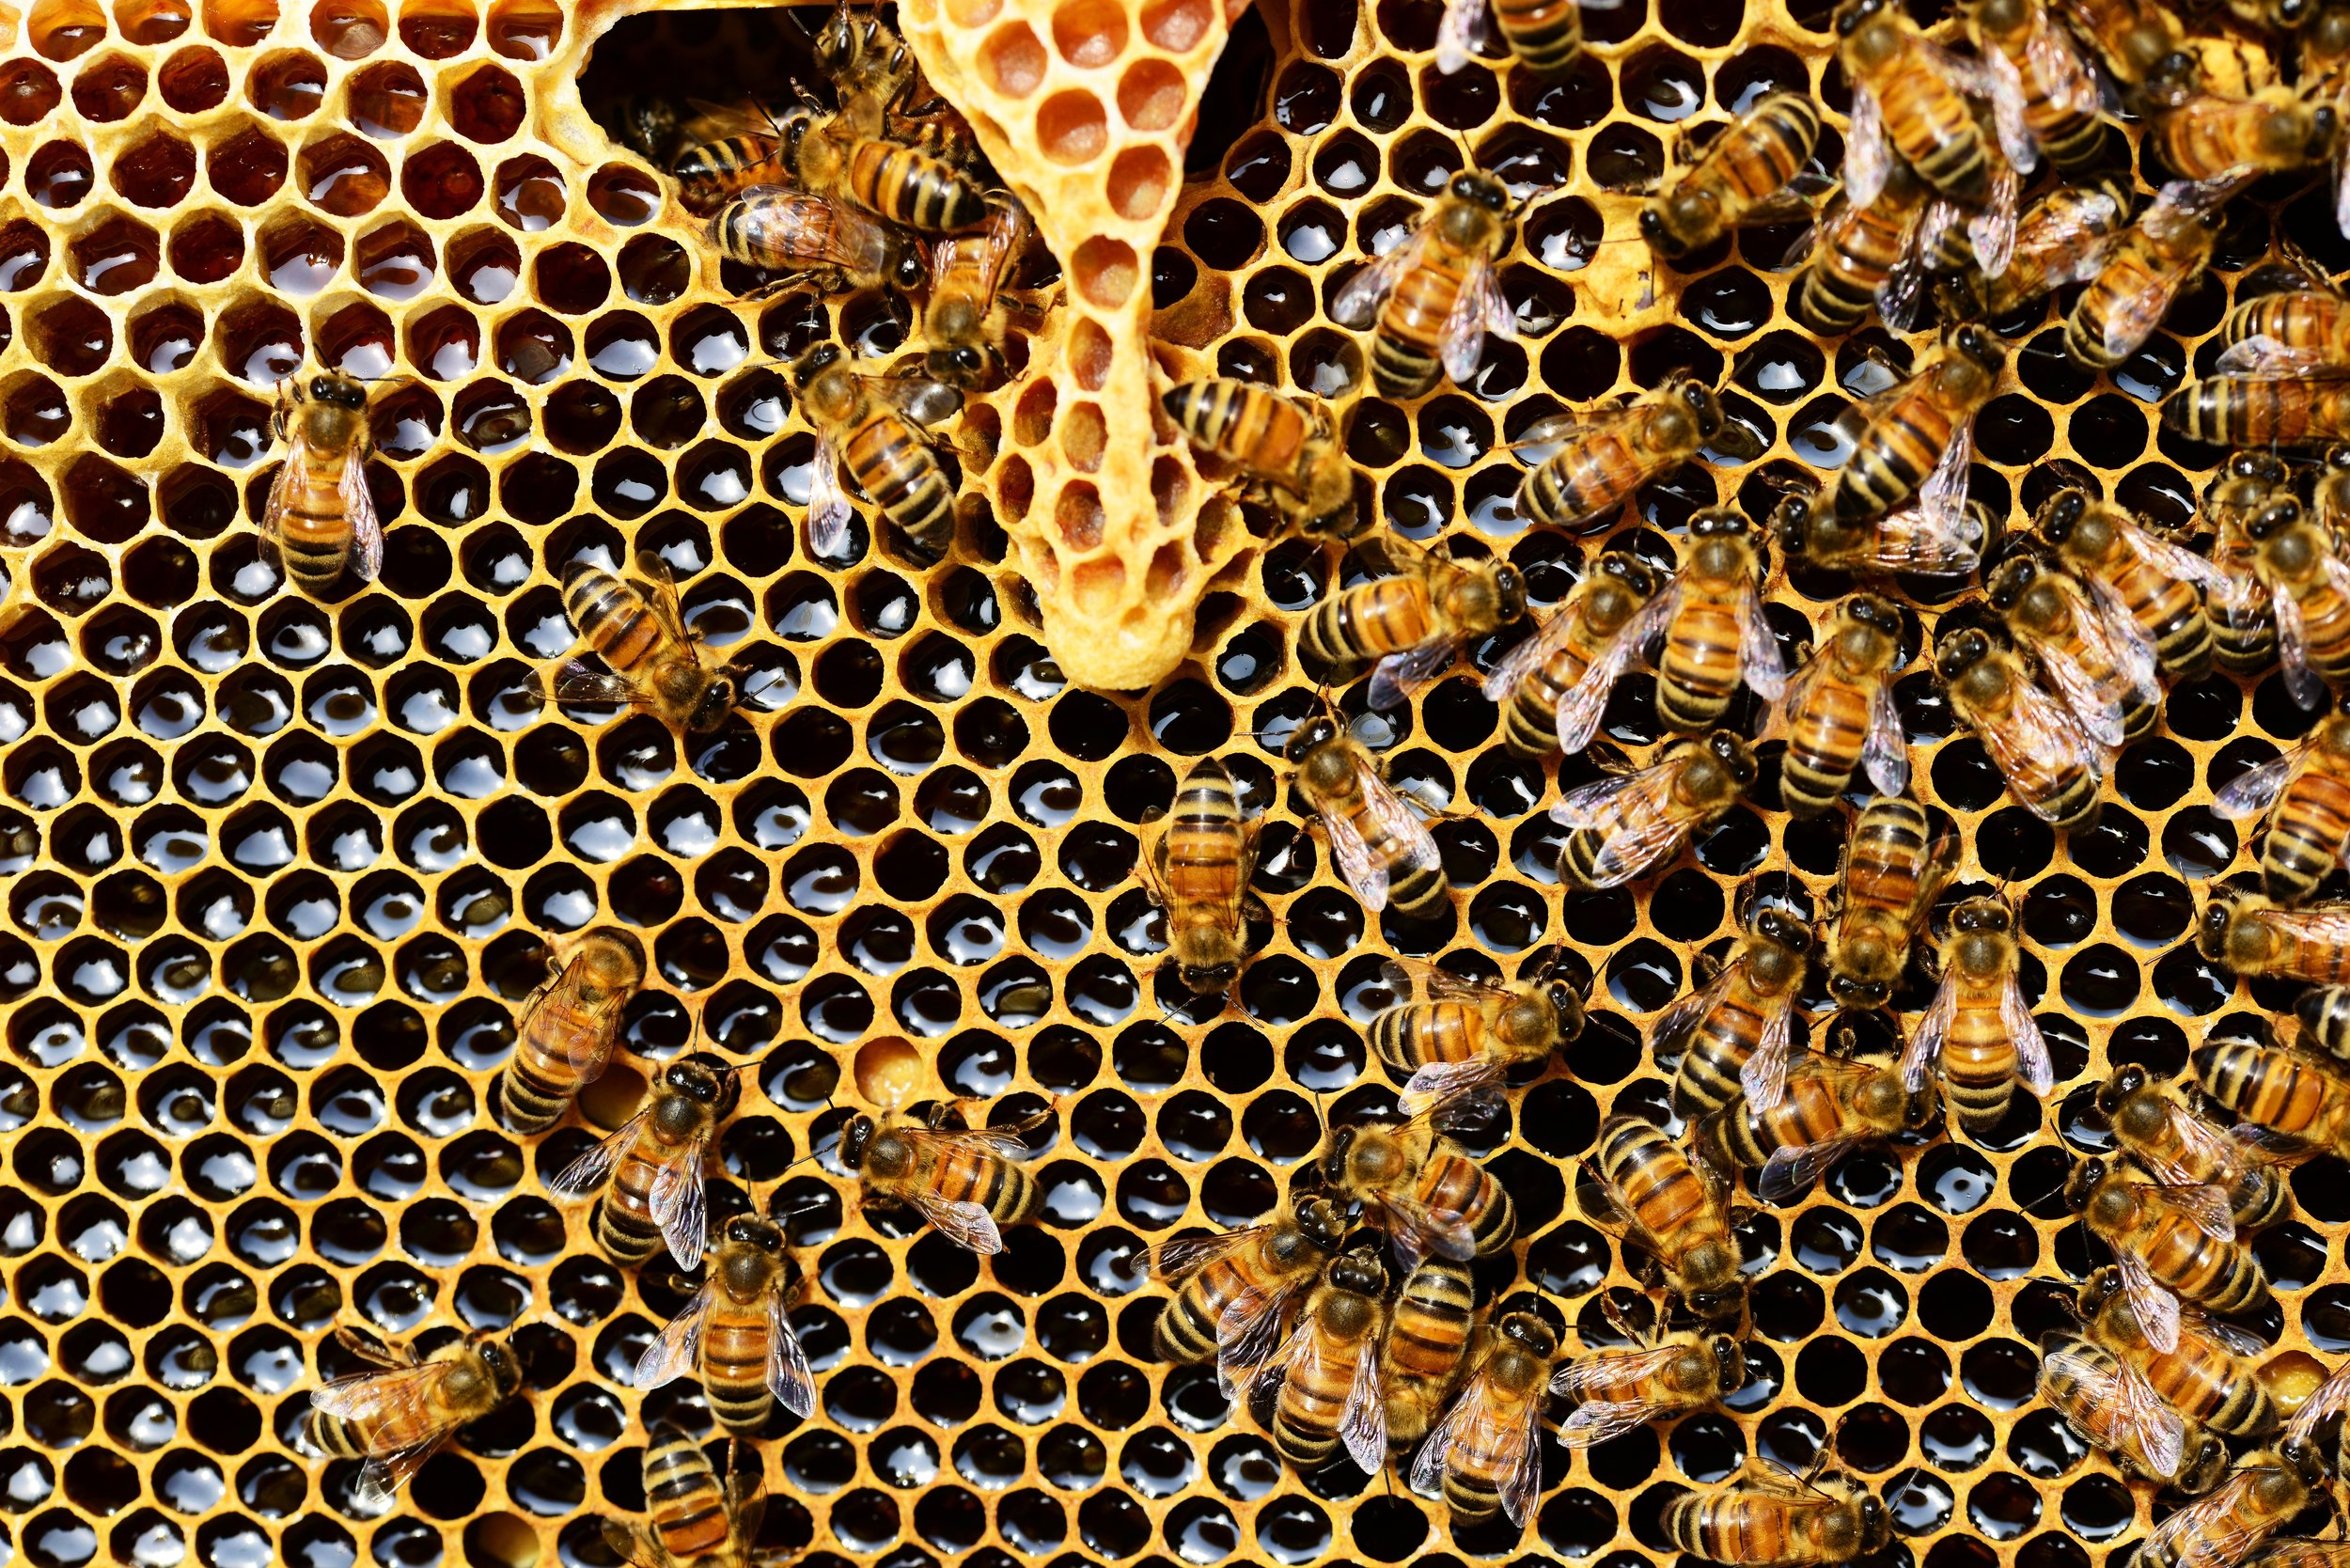 queen-cup-honeycomb-honey-bee-new-queen-rearing-compartment-56876.jpeg